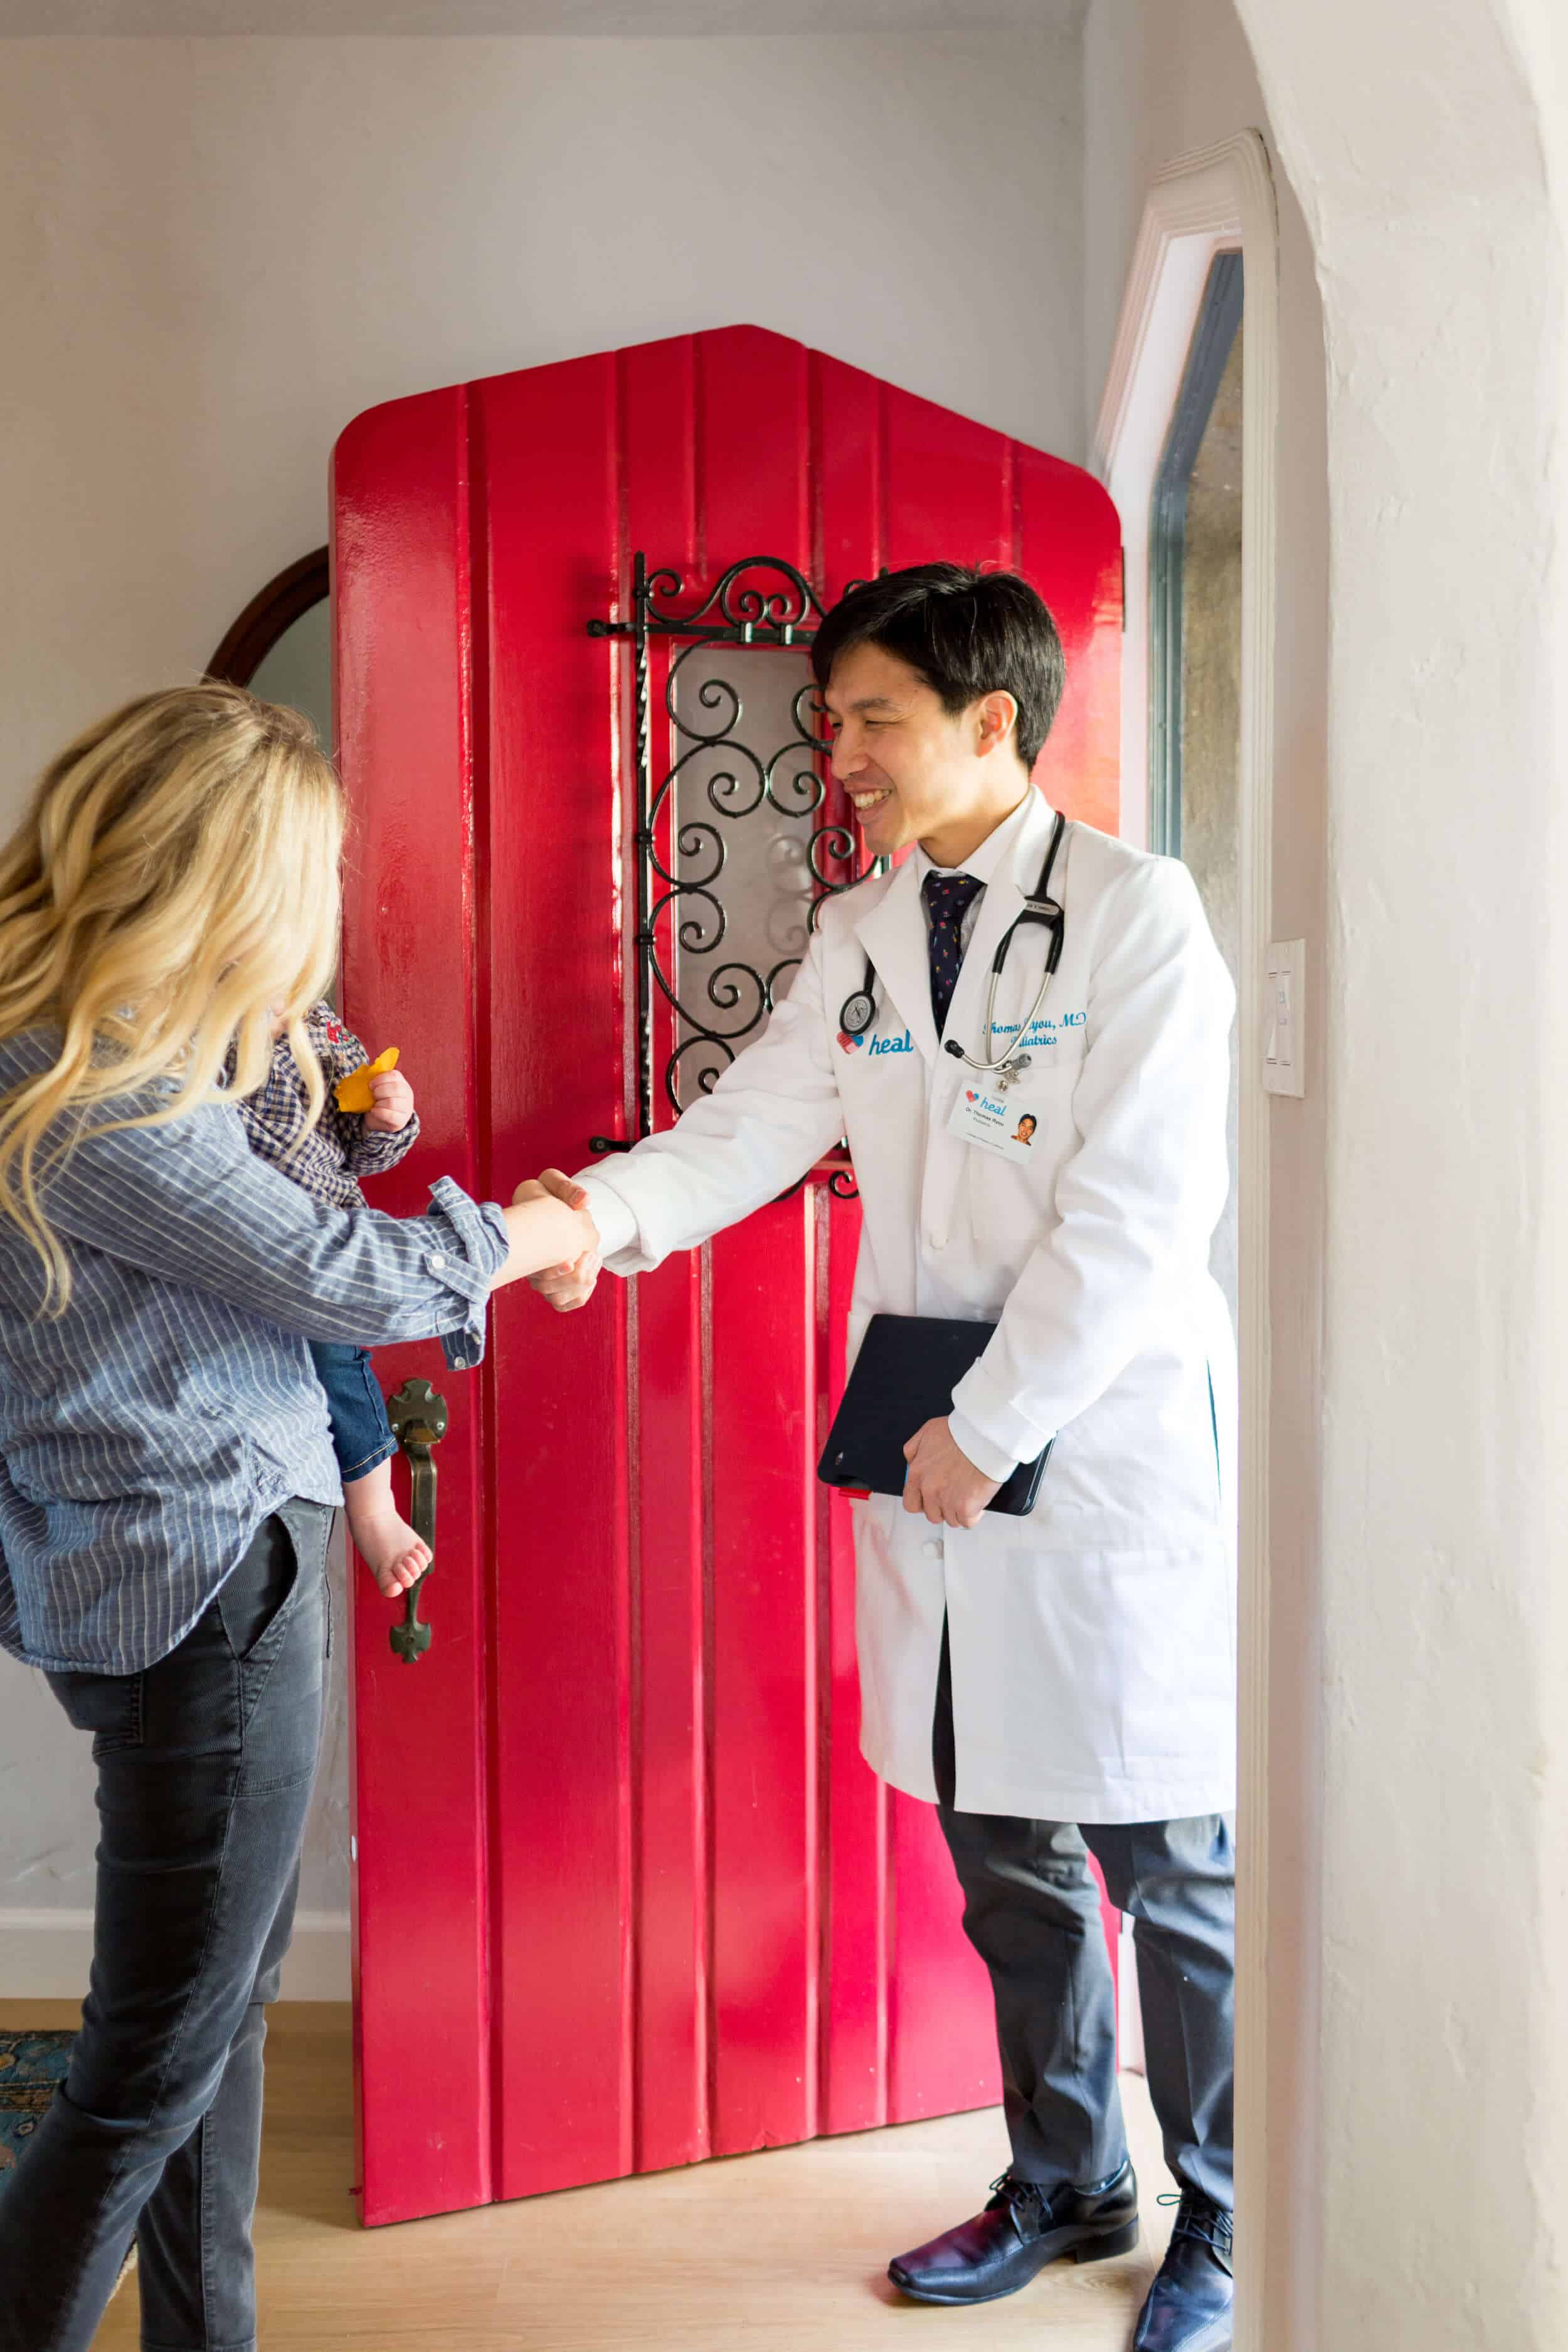 Emily Henderson_Home_Family_In Home_Medicine_Checkup_Doctor_Heal_62